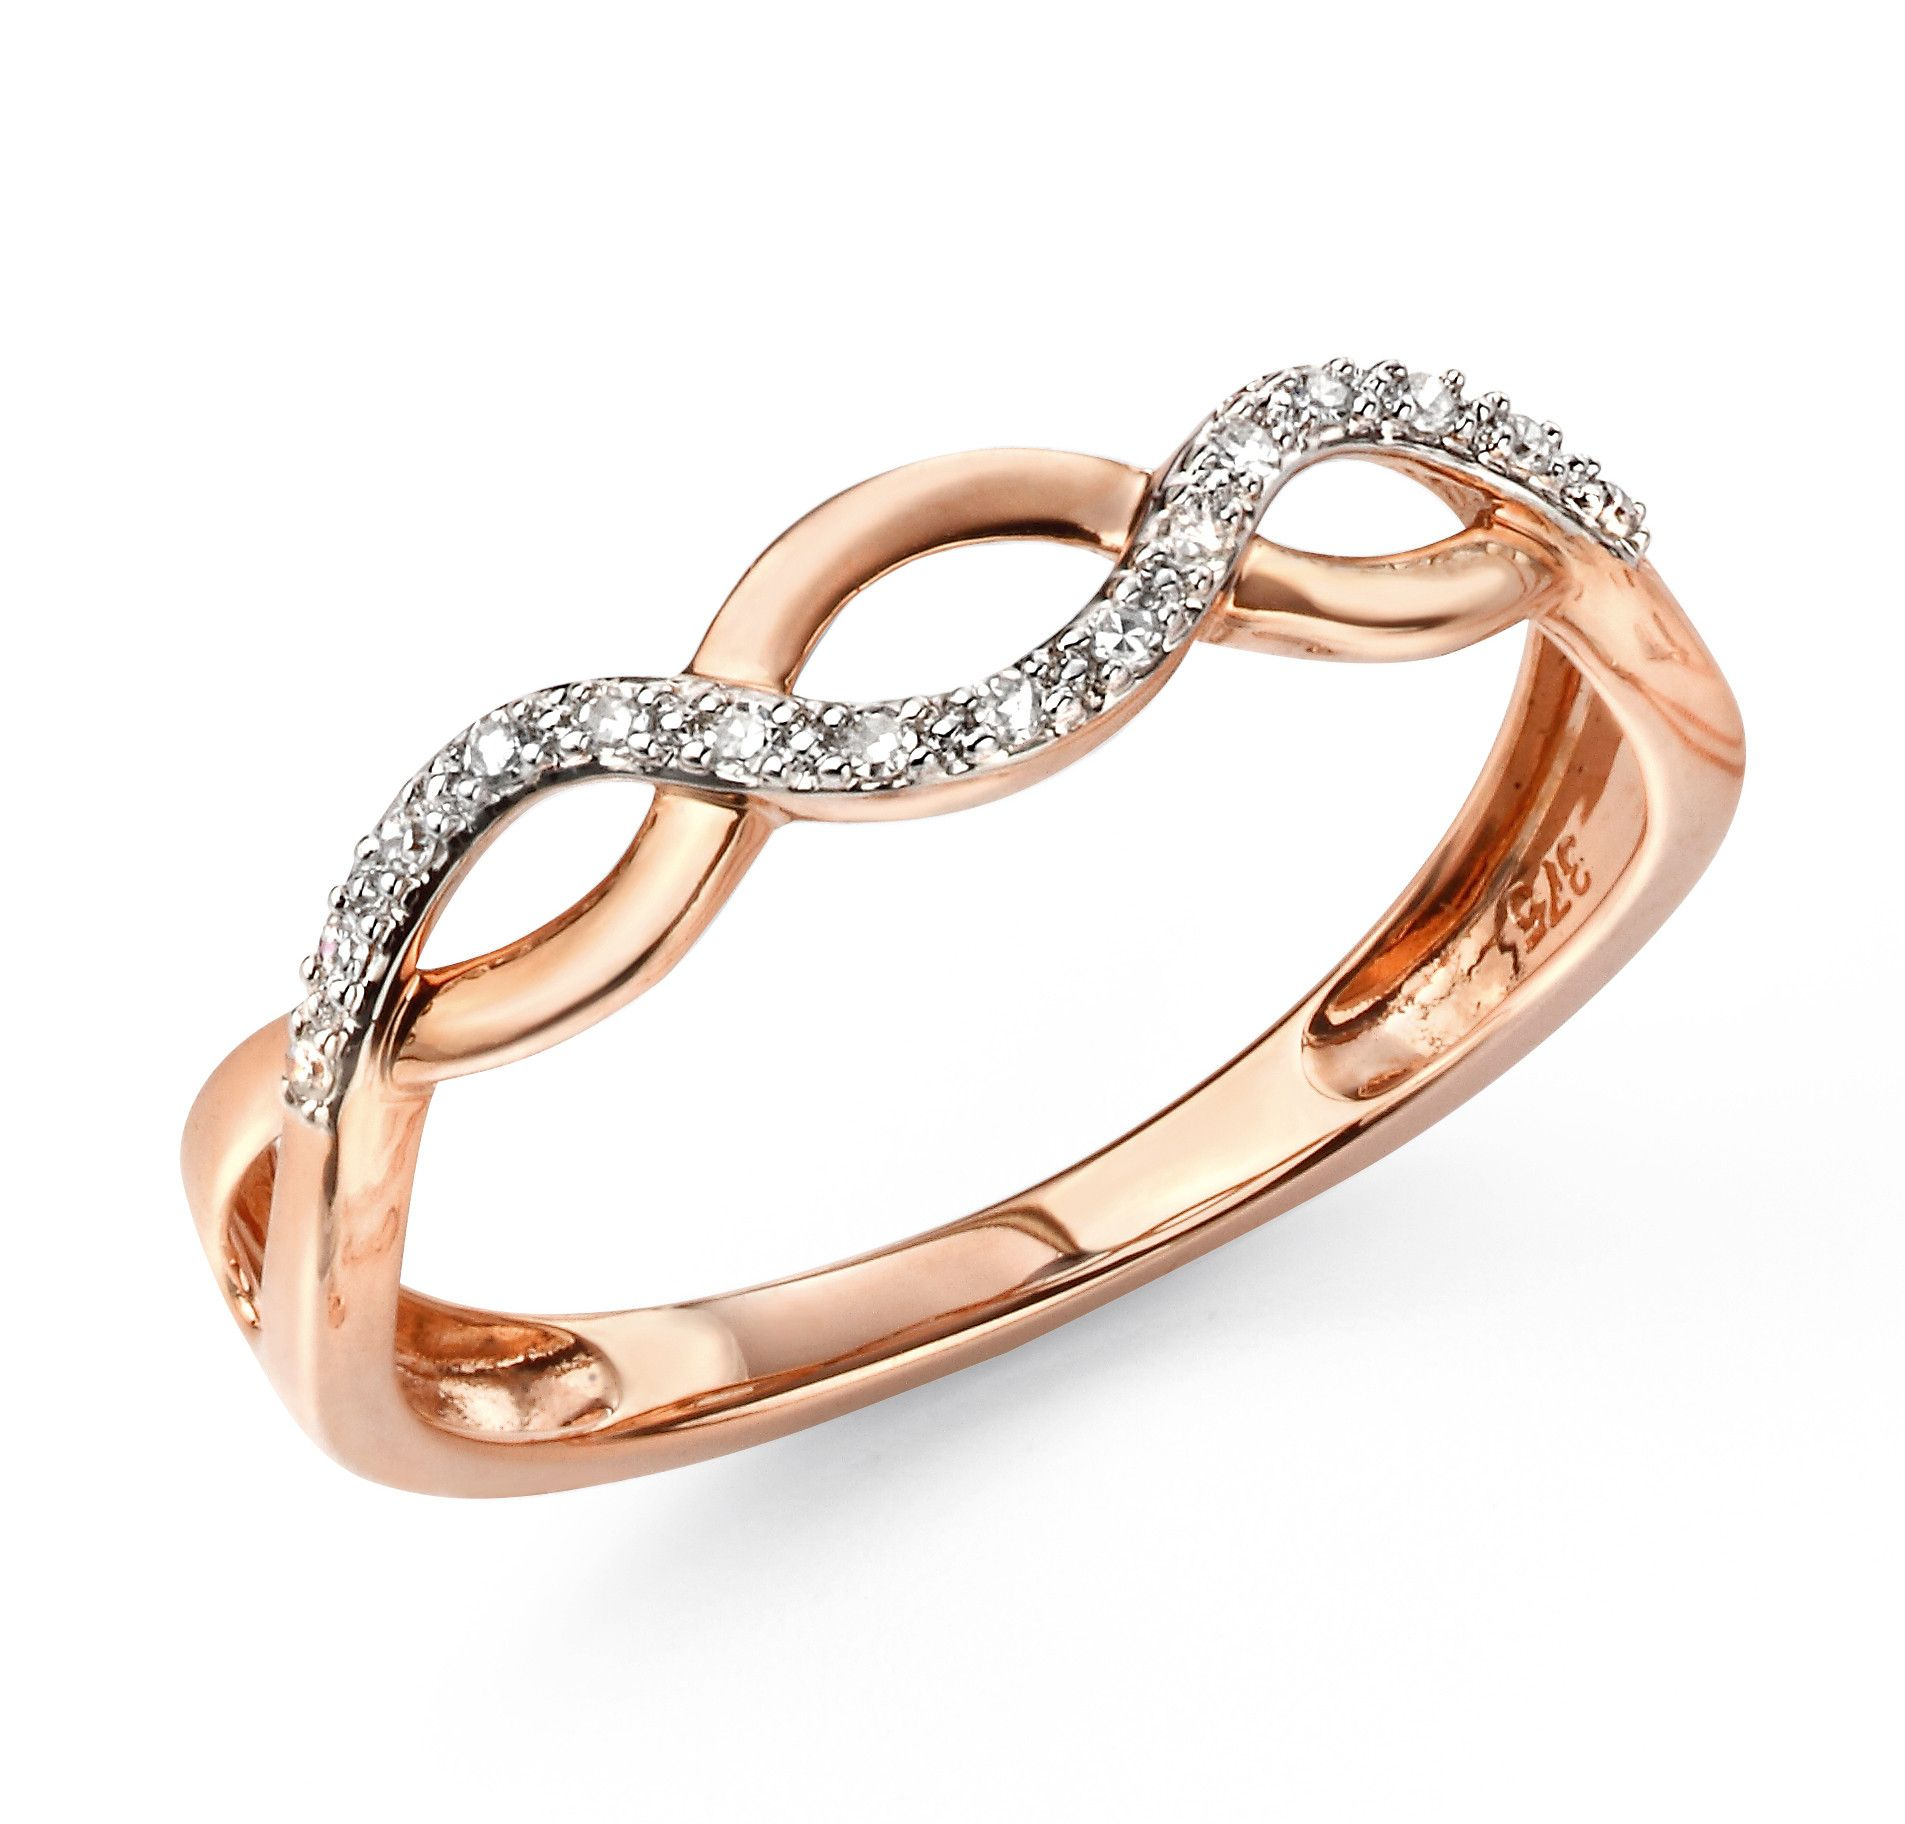 9ct Rose Gold Elements Diamond Entwined Ring